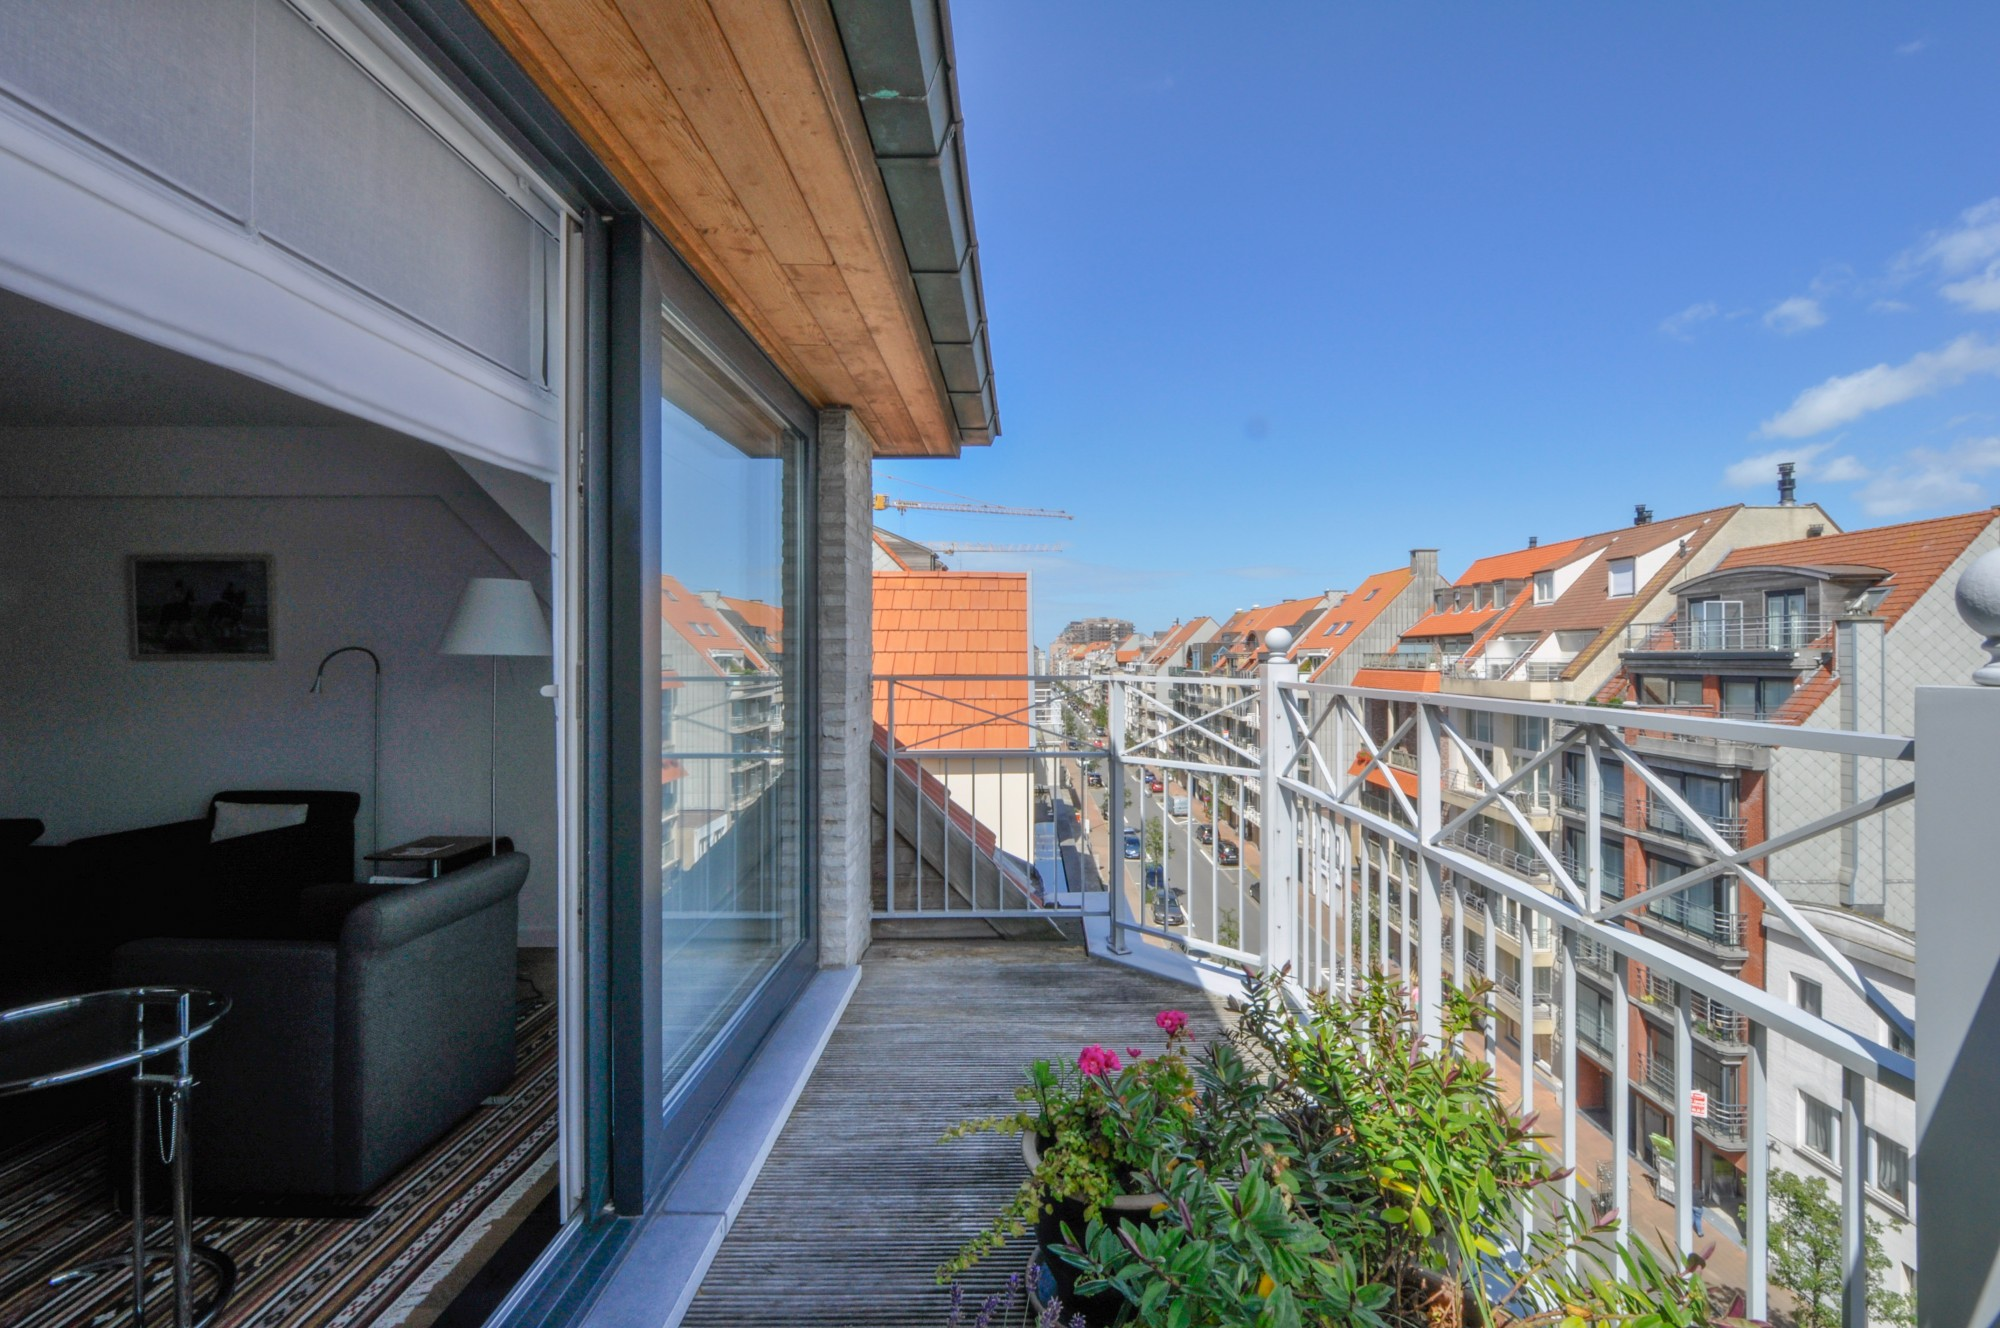 Ventes appartement t2 f2 knokke heist albertstrand for Agence immobiliere vente appartement